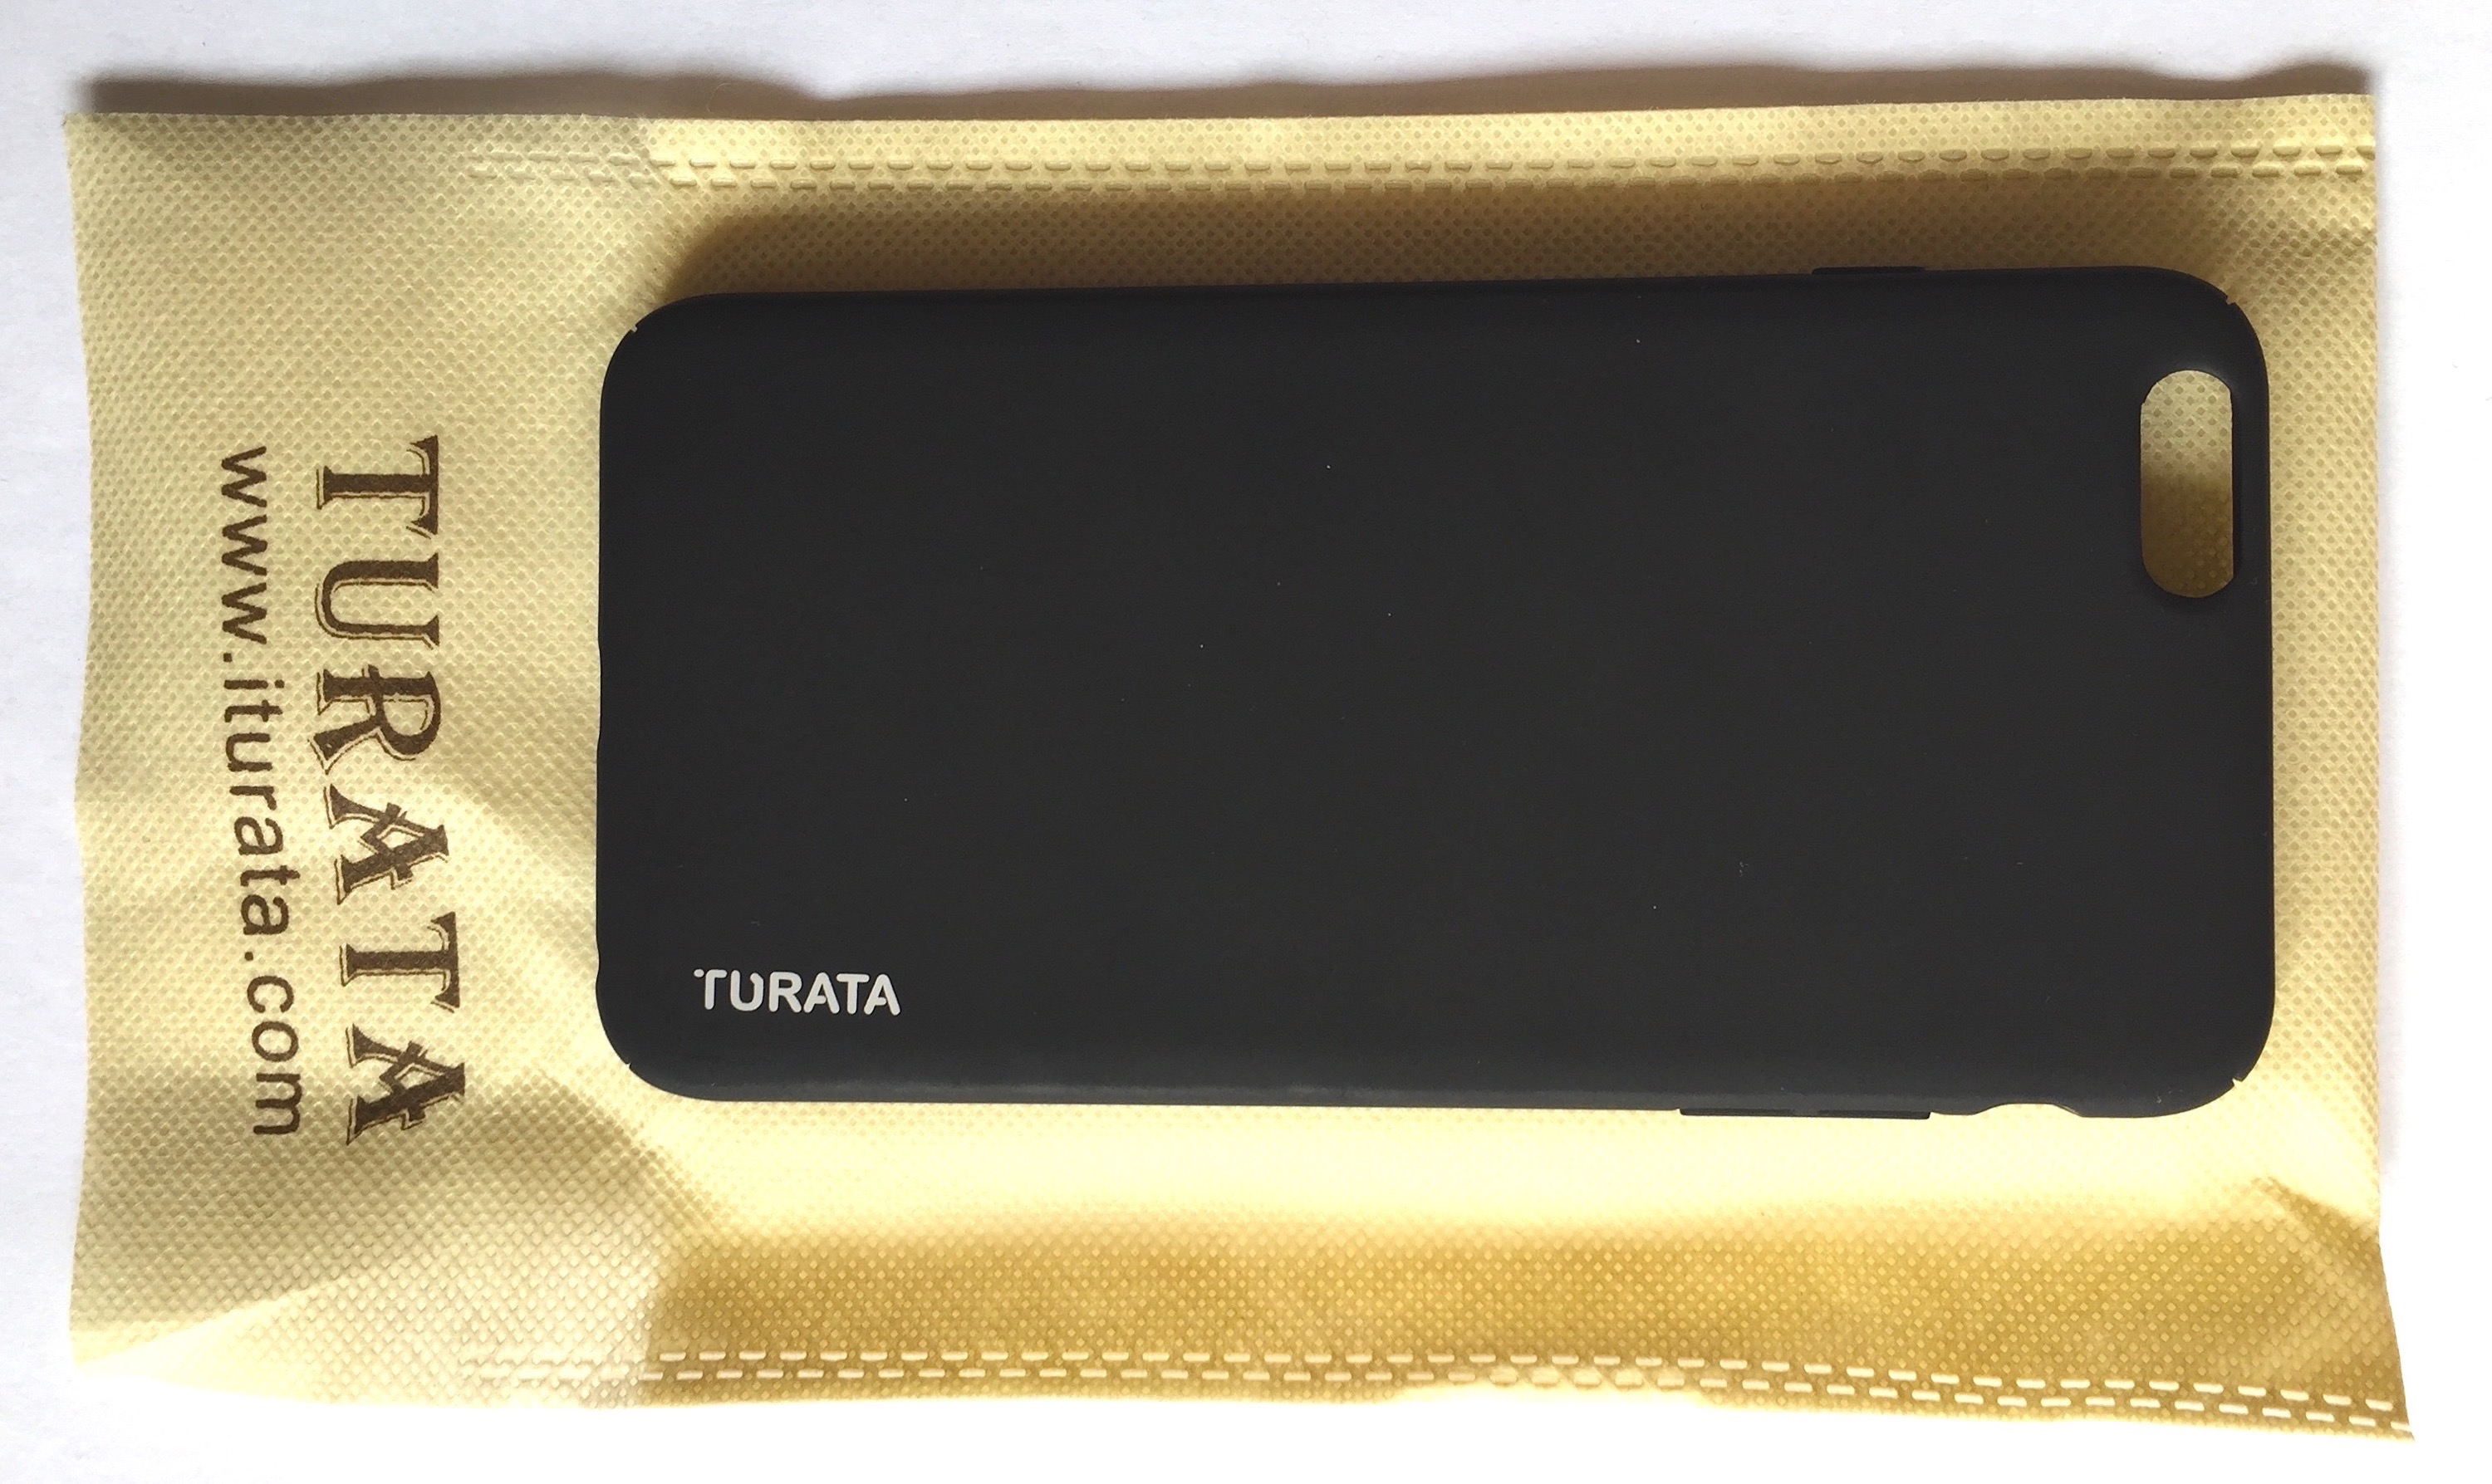 turata coque iphone 6 plus